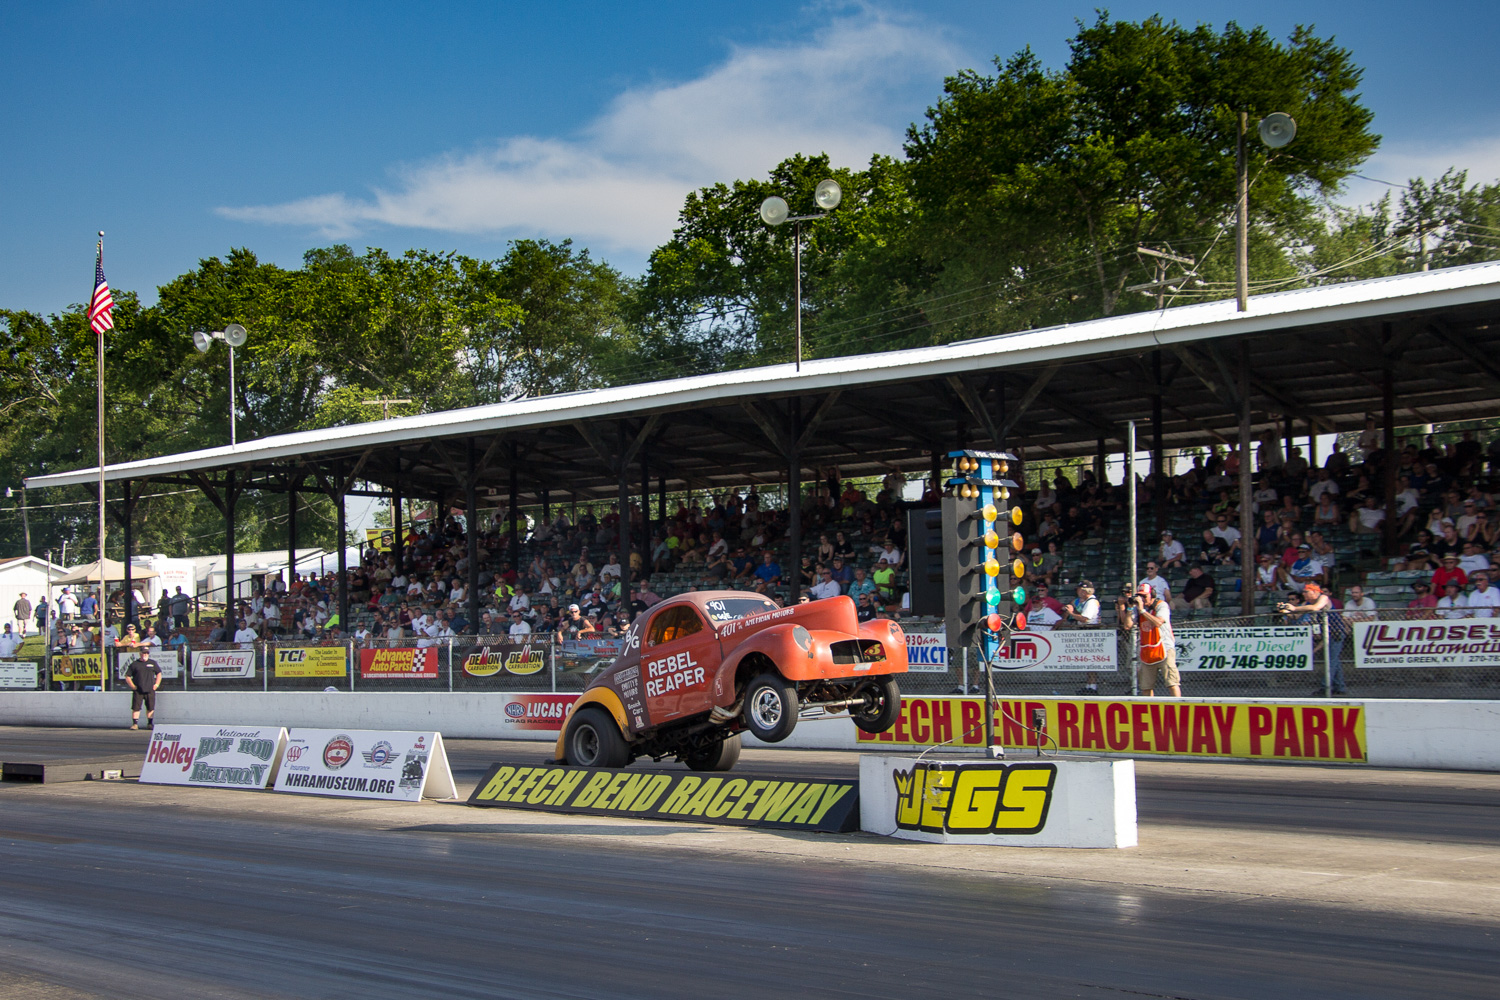 Geezer Gassers event winner Don Moyer hangs up the front wheels in his AMC 401-powered Rebel Reaper gasser.